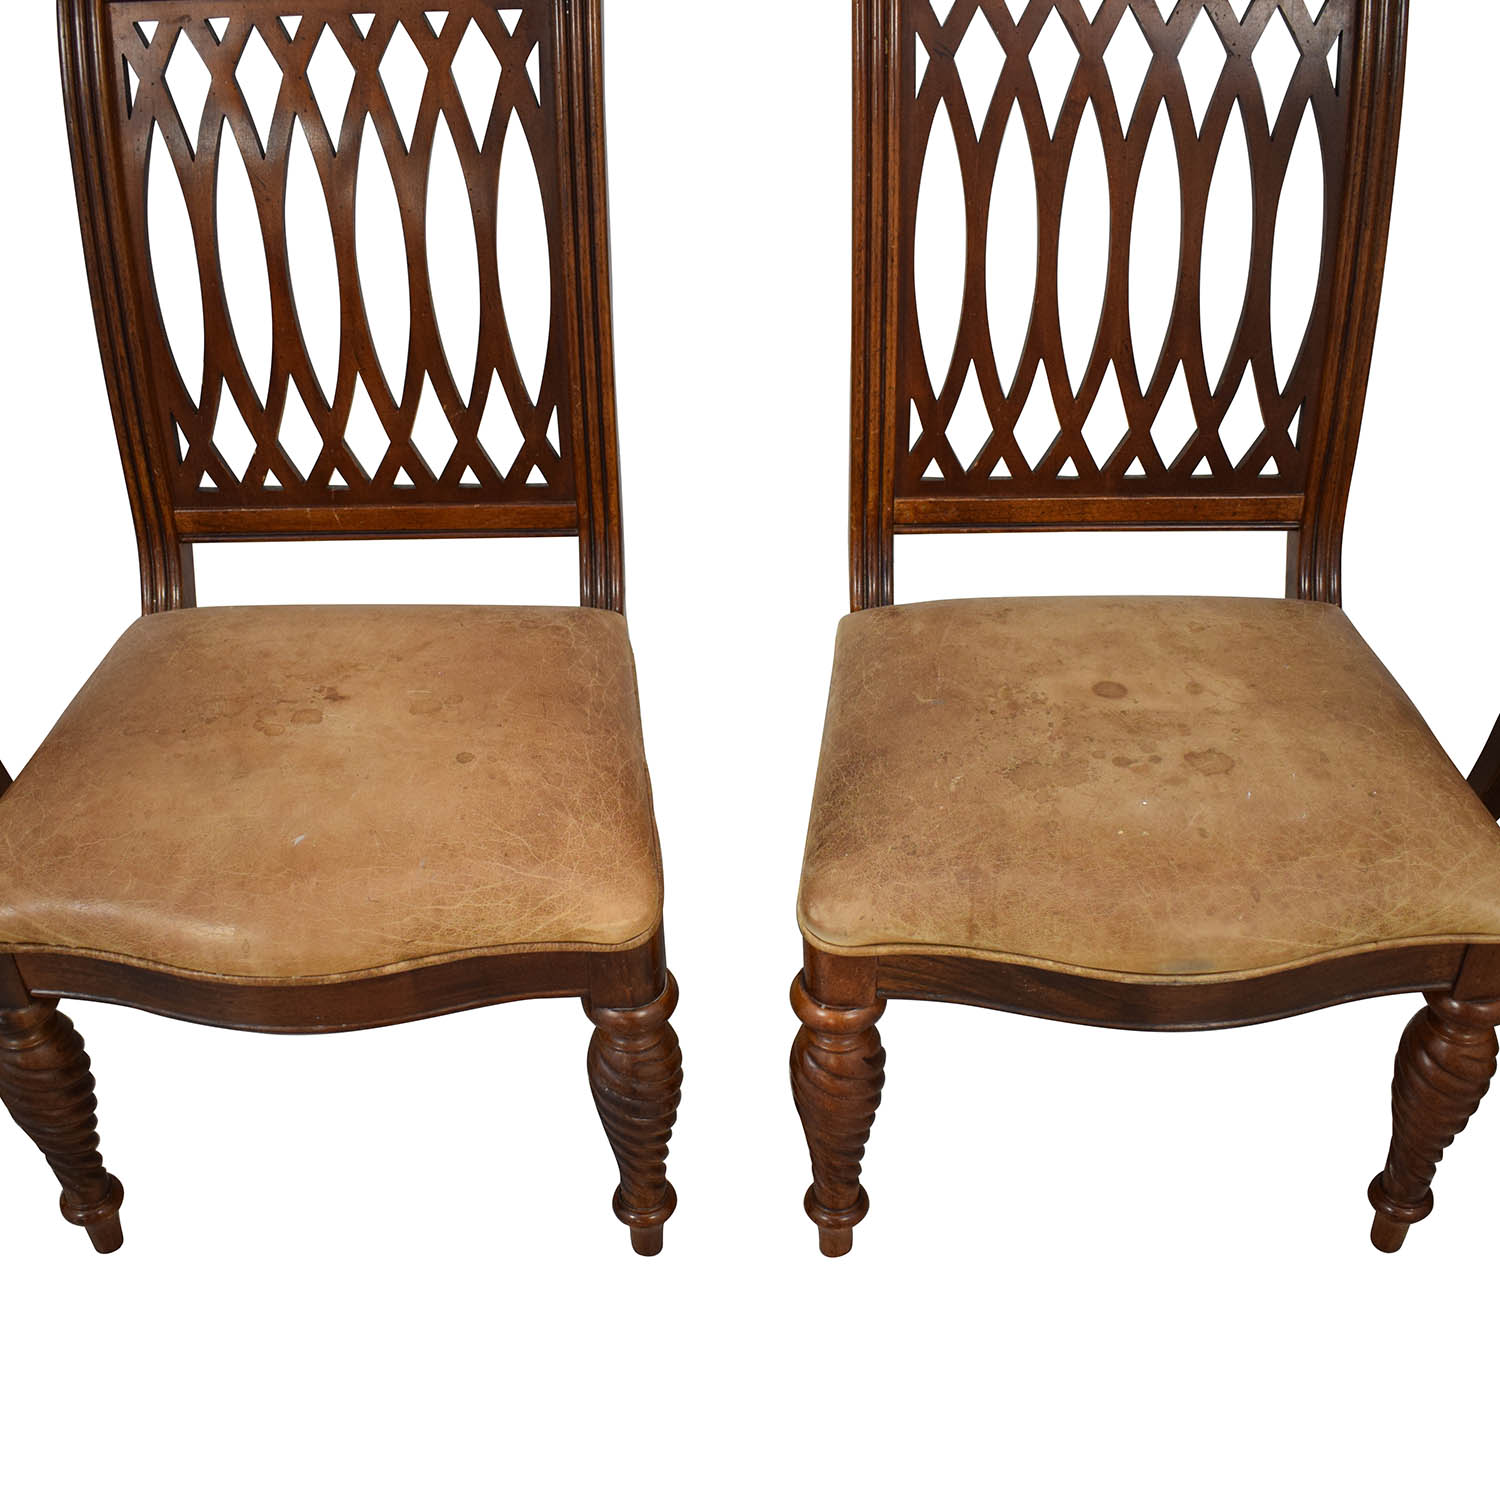 81 Off Bernhardt Bernhardt Embassy Row Cherry Carved Wood Dining Chairs Chairs